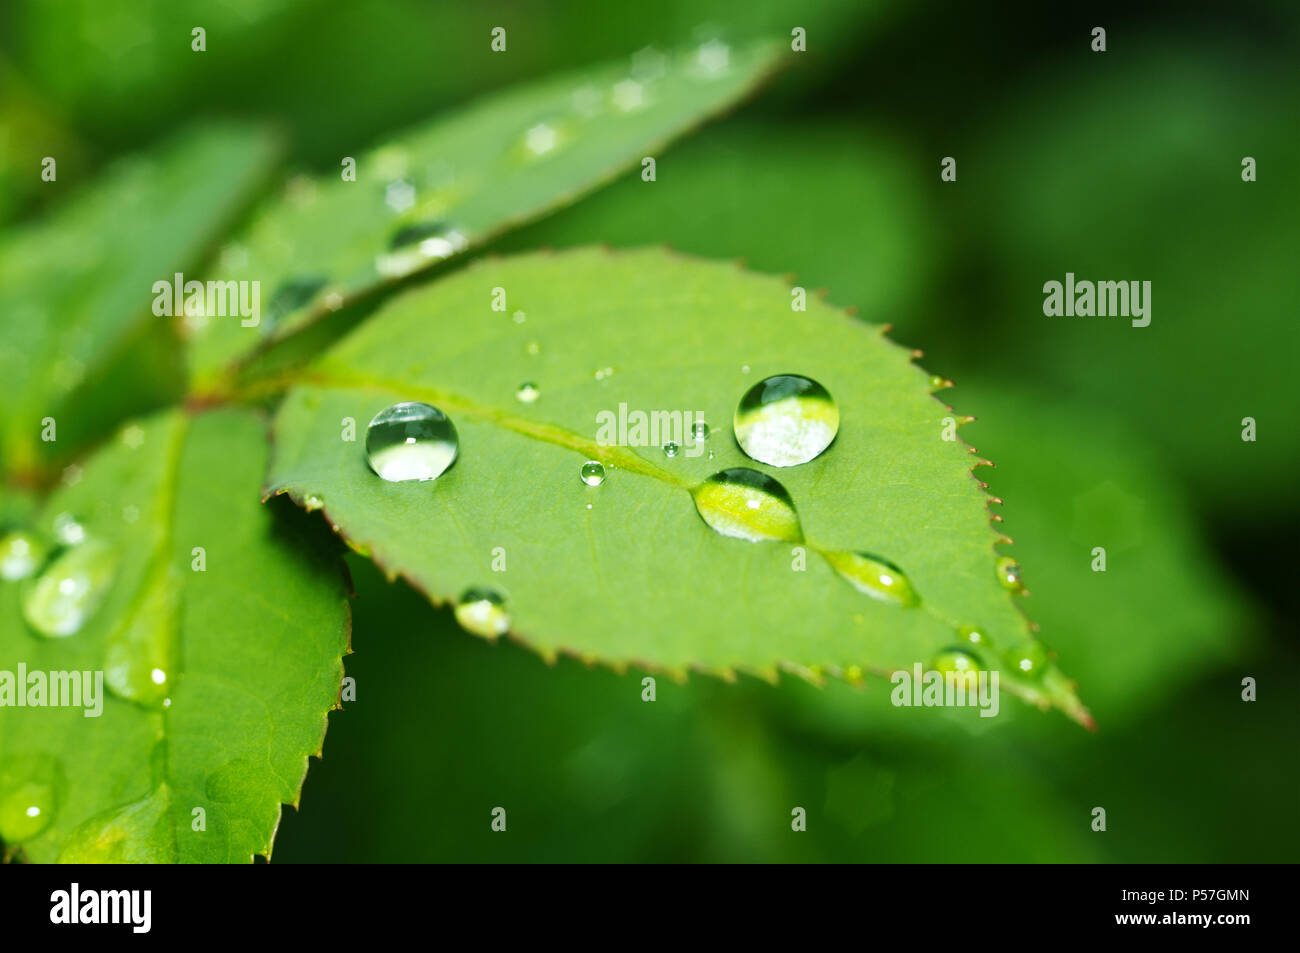 Beautiful Nature Background With Morning Fresh Drops Of Transparent Rain Water On A Green Leaf Drops Of Dew In The Green Leaves Droplets Outdoors Stock Photo Alamy